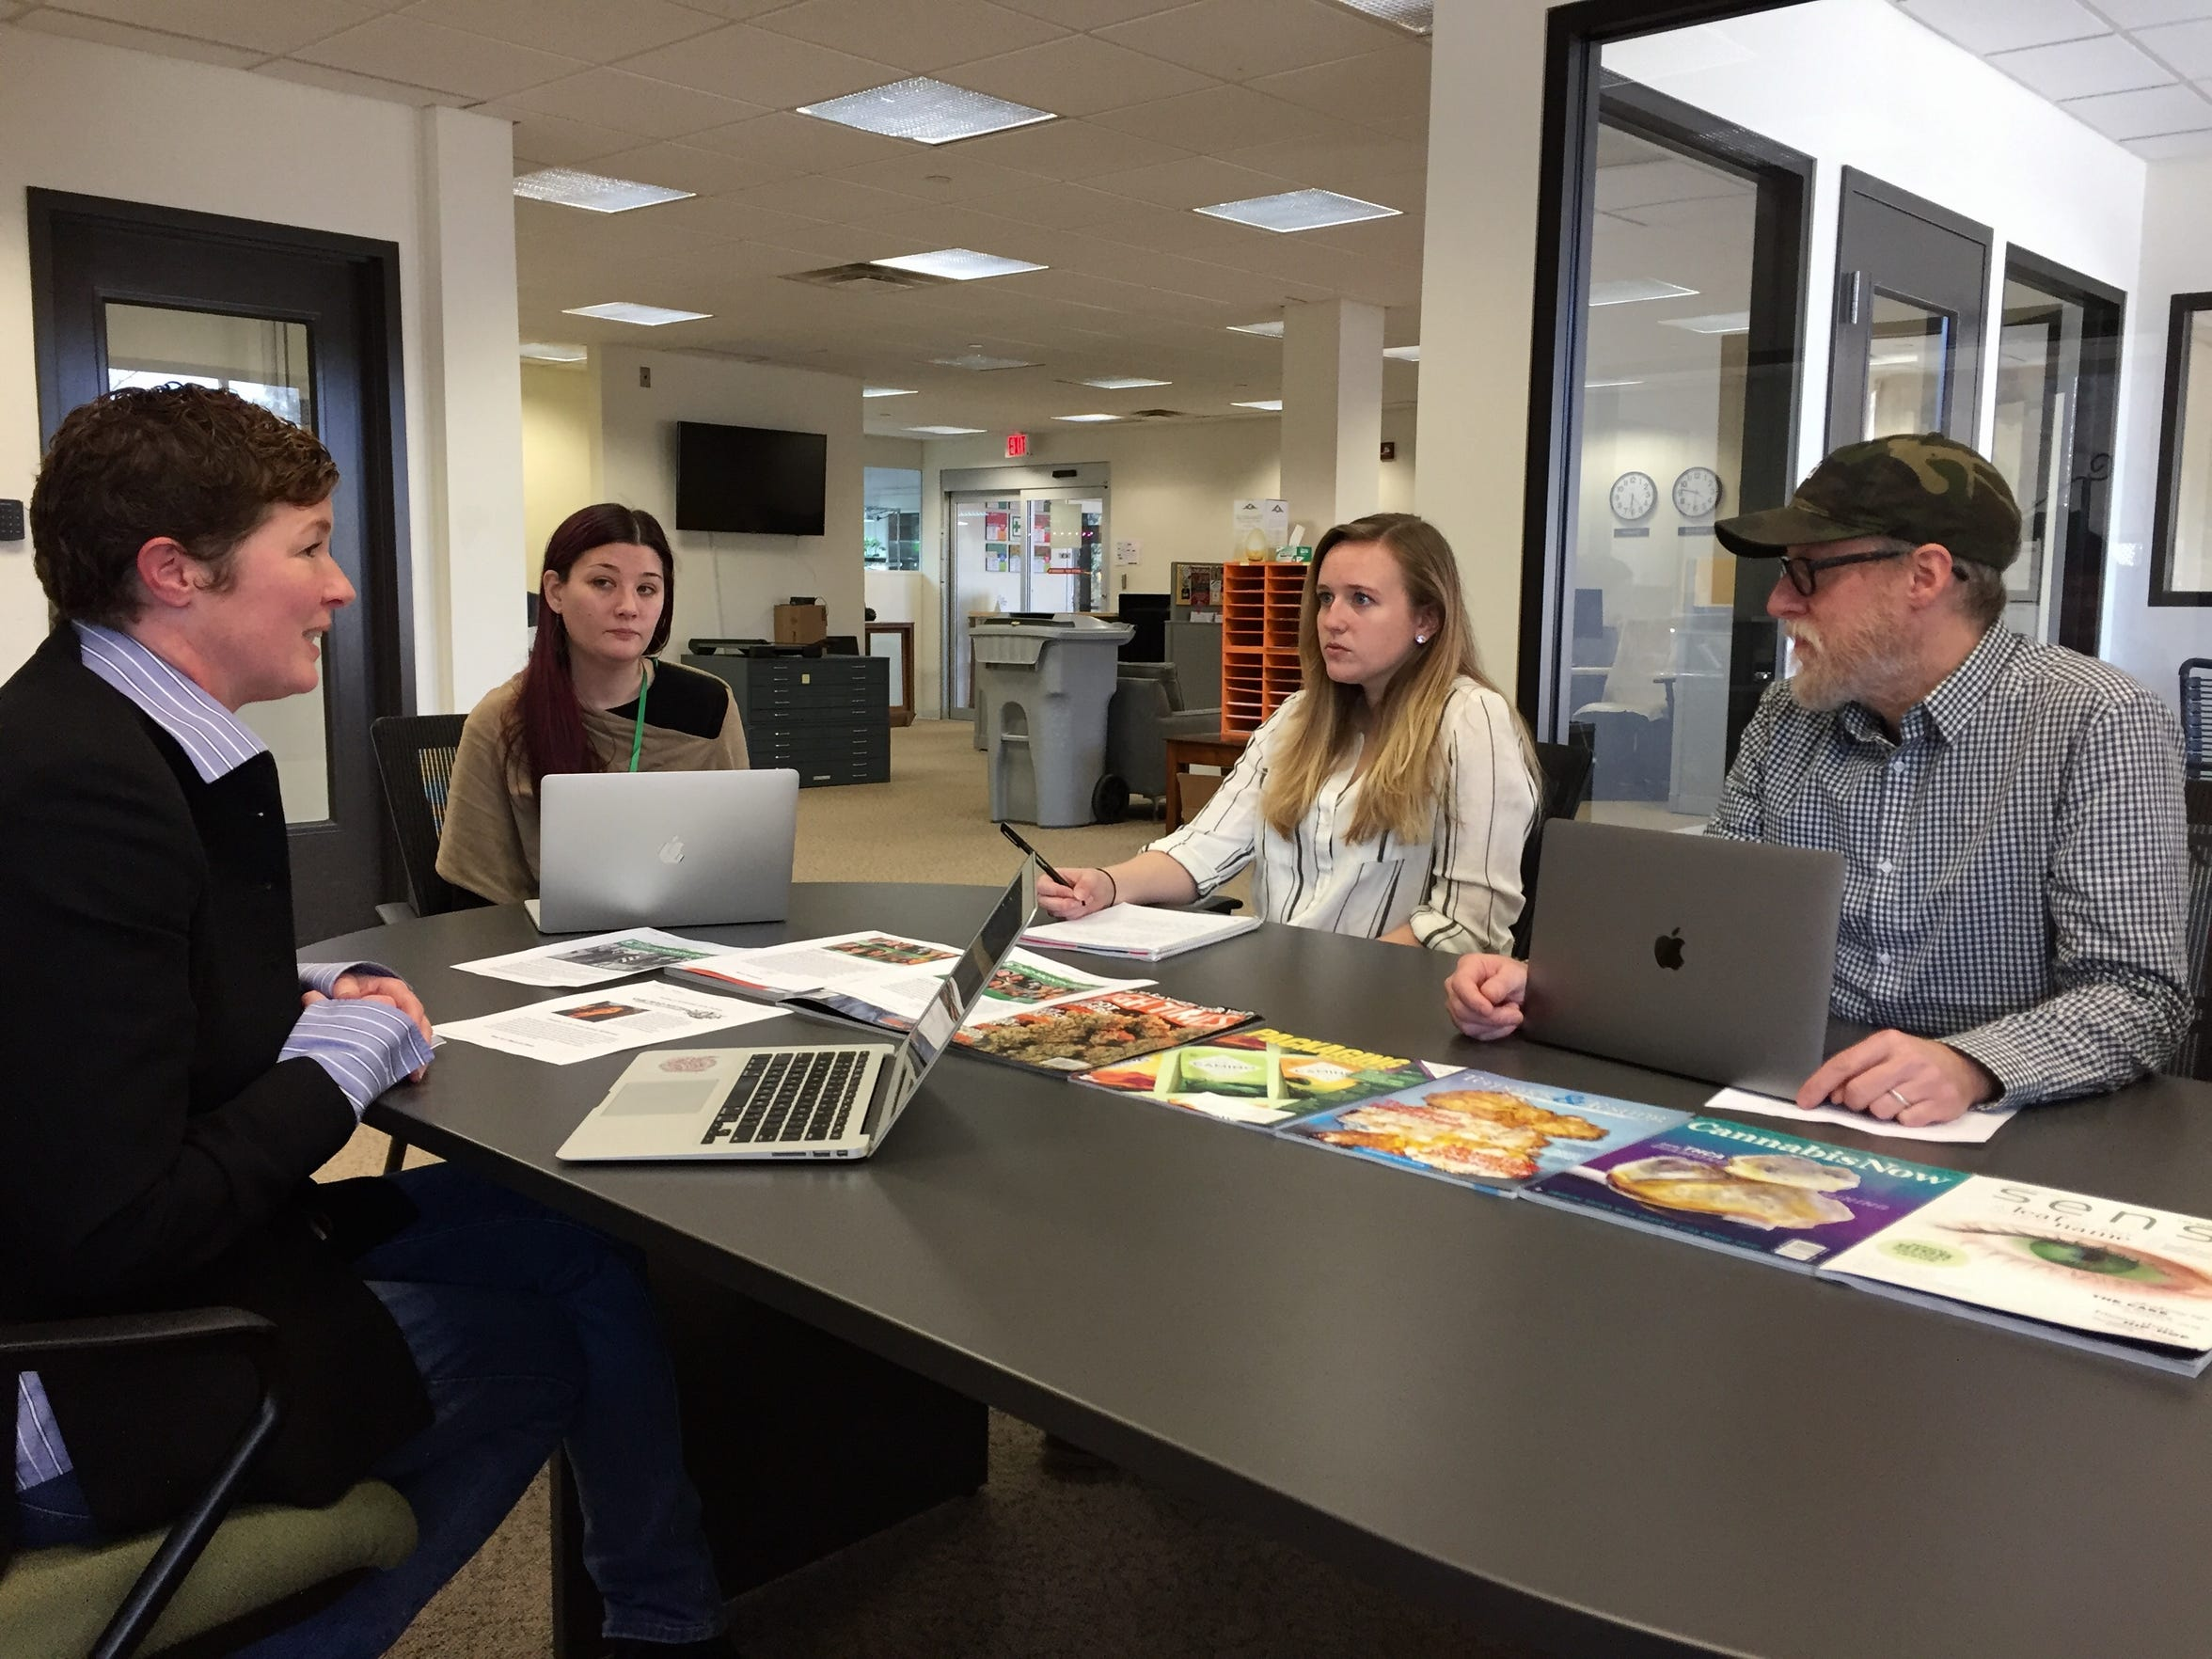 Bridget Conry leads a marketing team meeting at the CVD, Inc. production facility. The conversation touched on how much the company should emphasize April 20, an unofficial marijuana holiday.